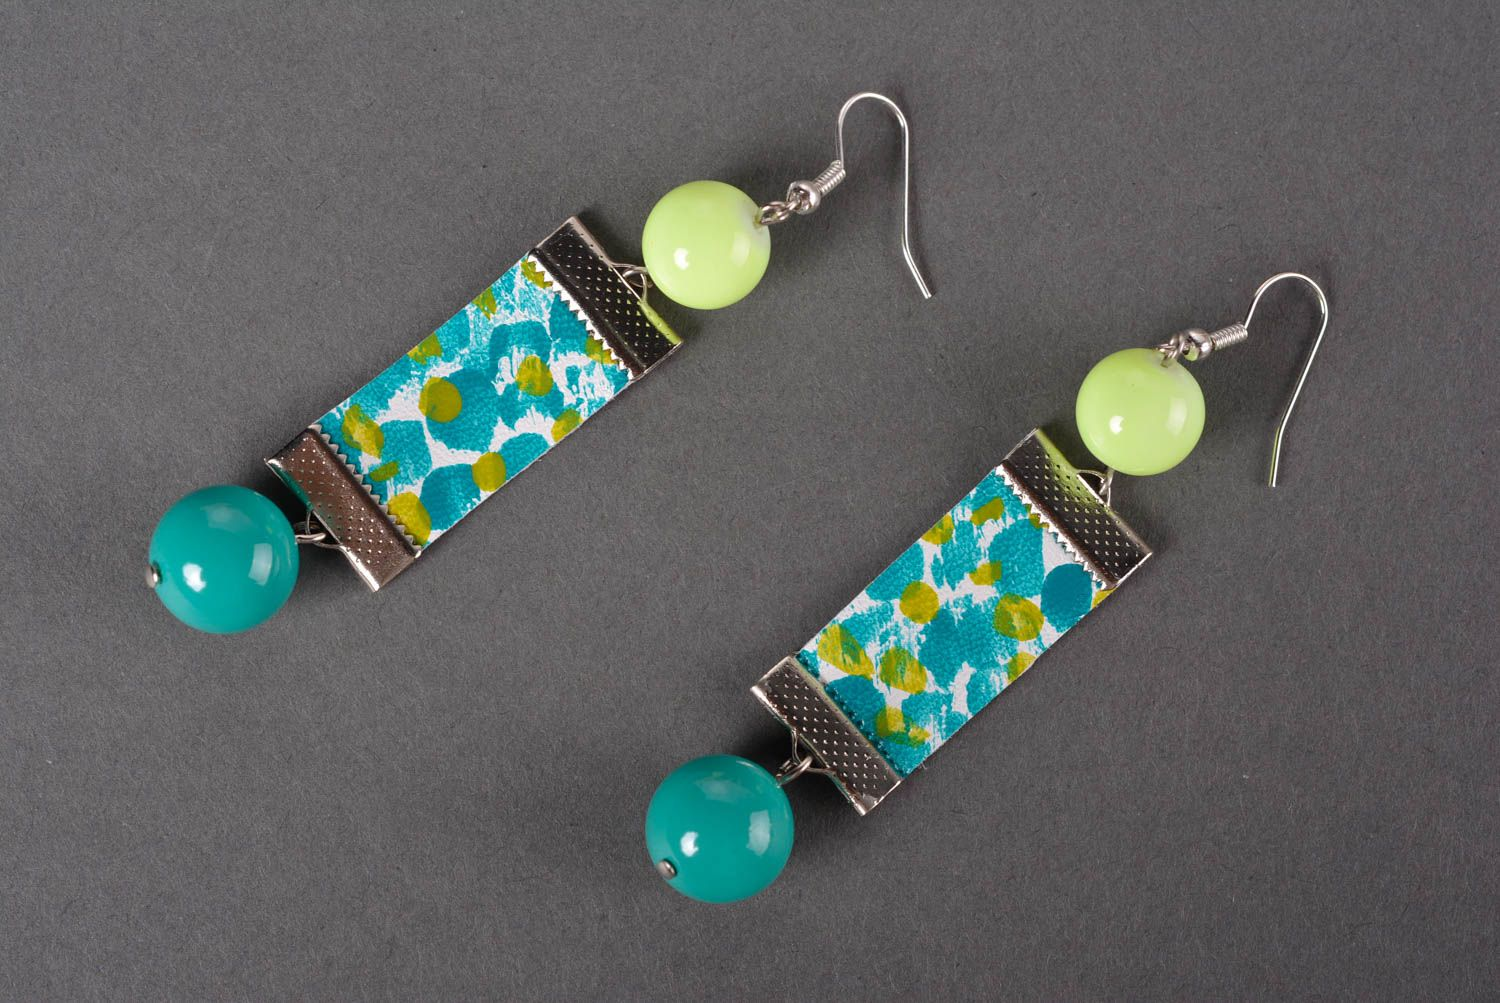 Stylish handmade leather earrings costume jewelry designs gifts for her photo 4